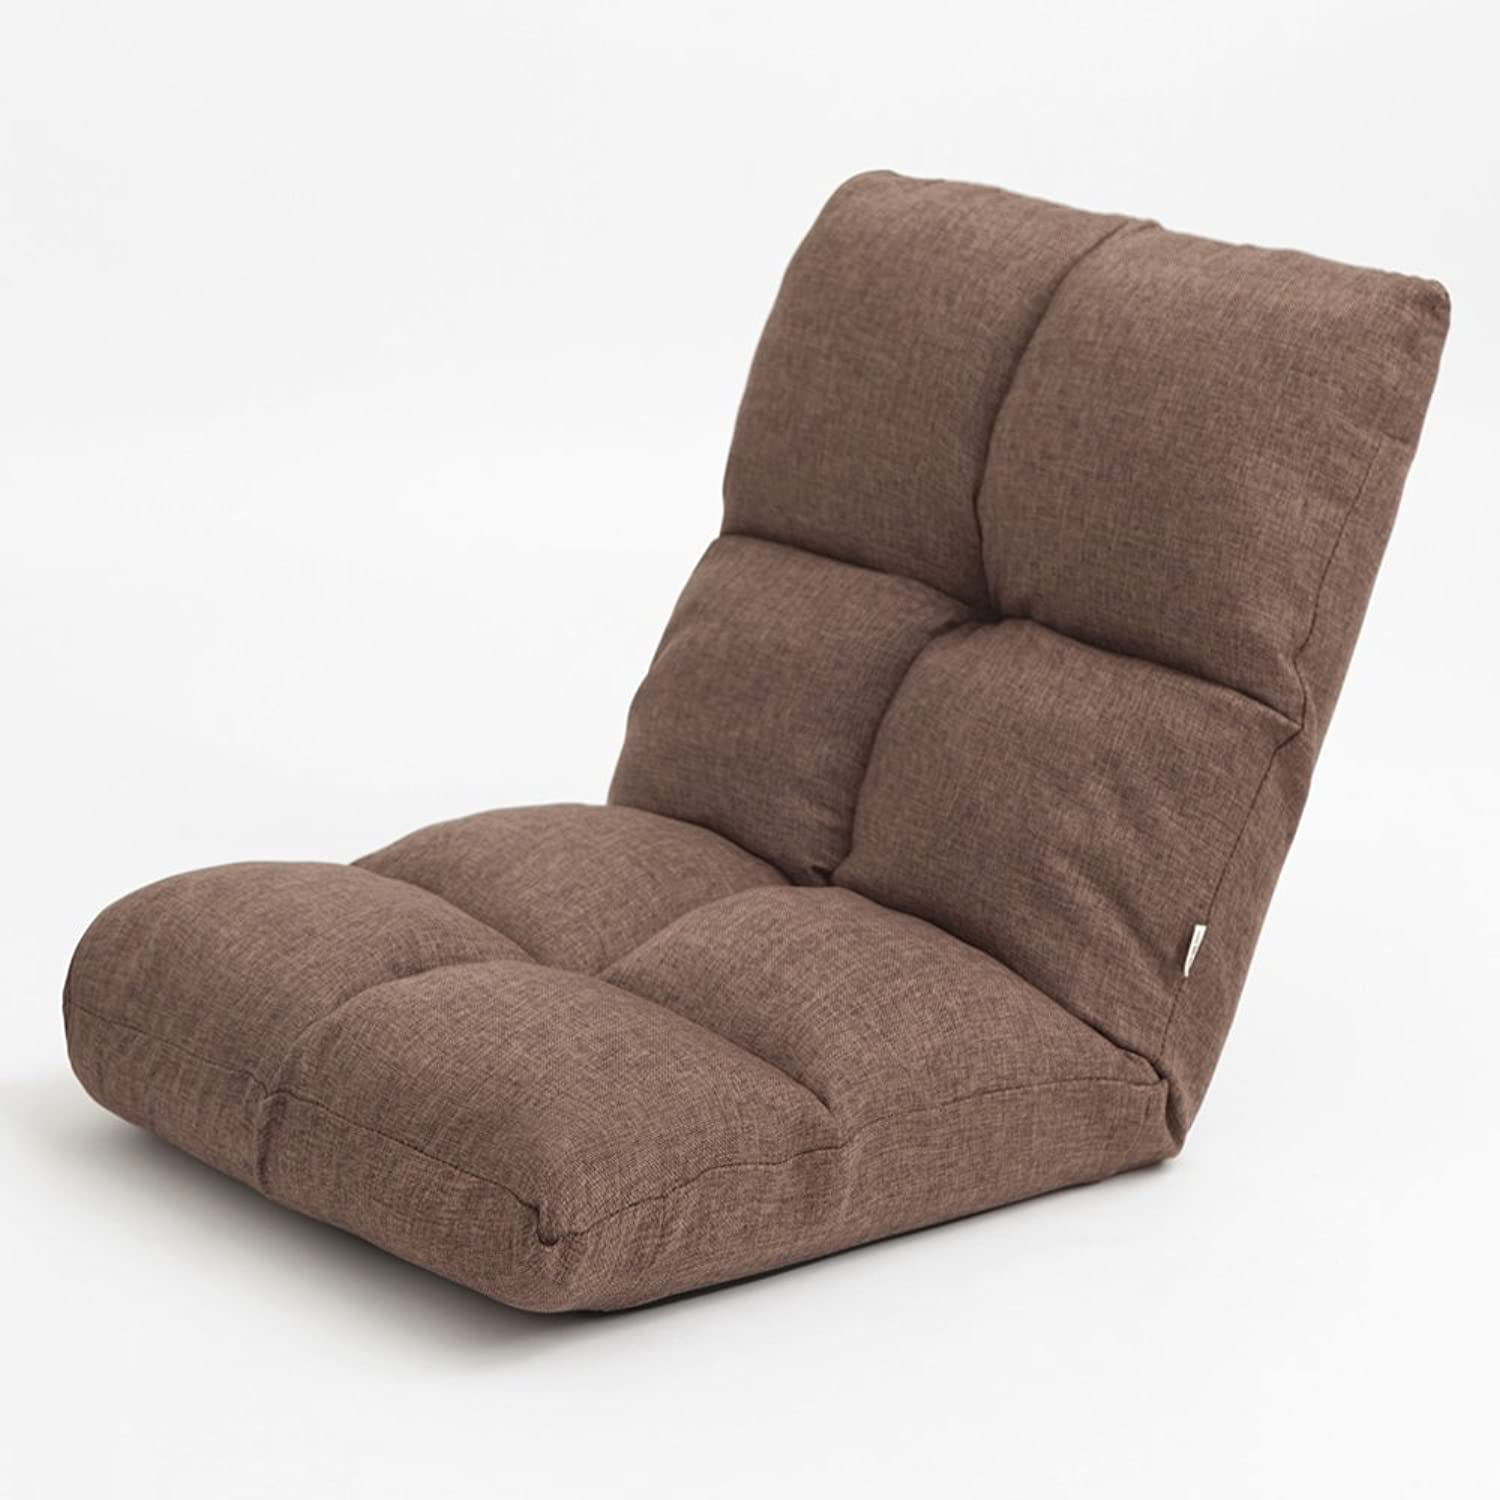 Folding Chair- Lounge Chairs Lounger Sofa Tatami Folding Small Sofa Bed Computer Backrest Chair Flooring Sofa (color   Brown)